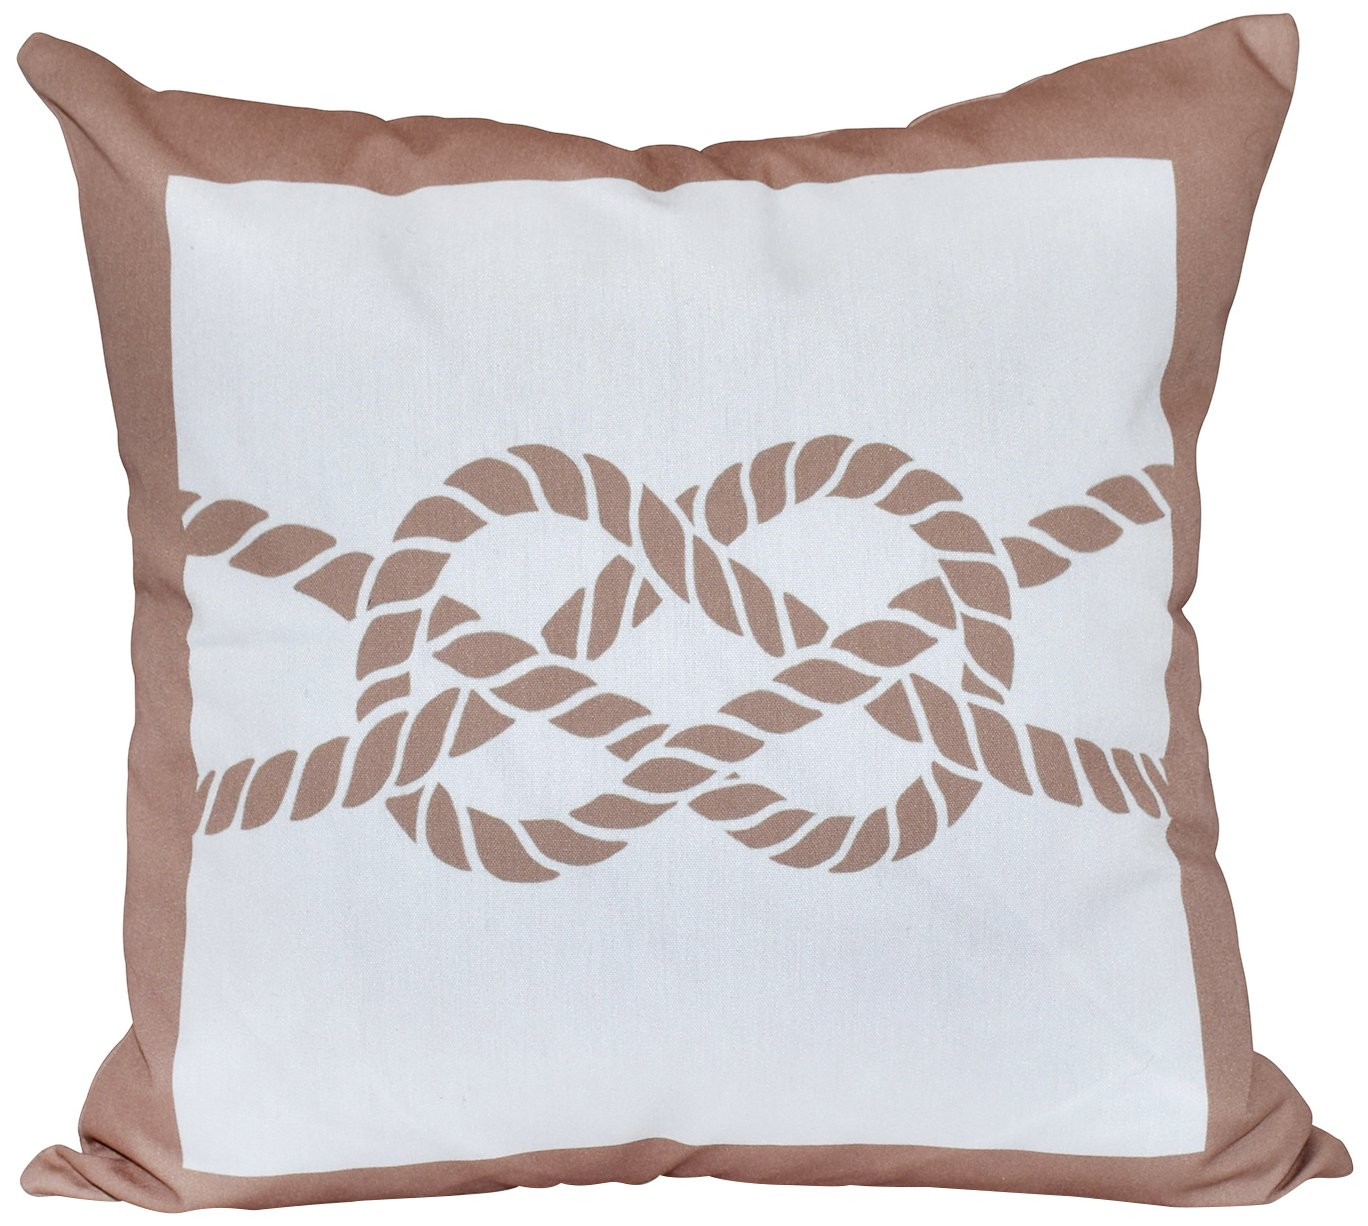 Pillow Beige//Taupe E by design O5PGN407TA8-18 18 x 18 Nautical Knot